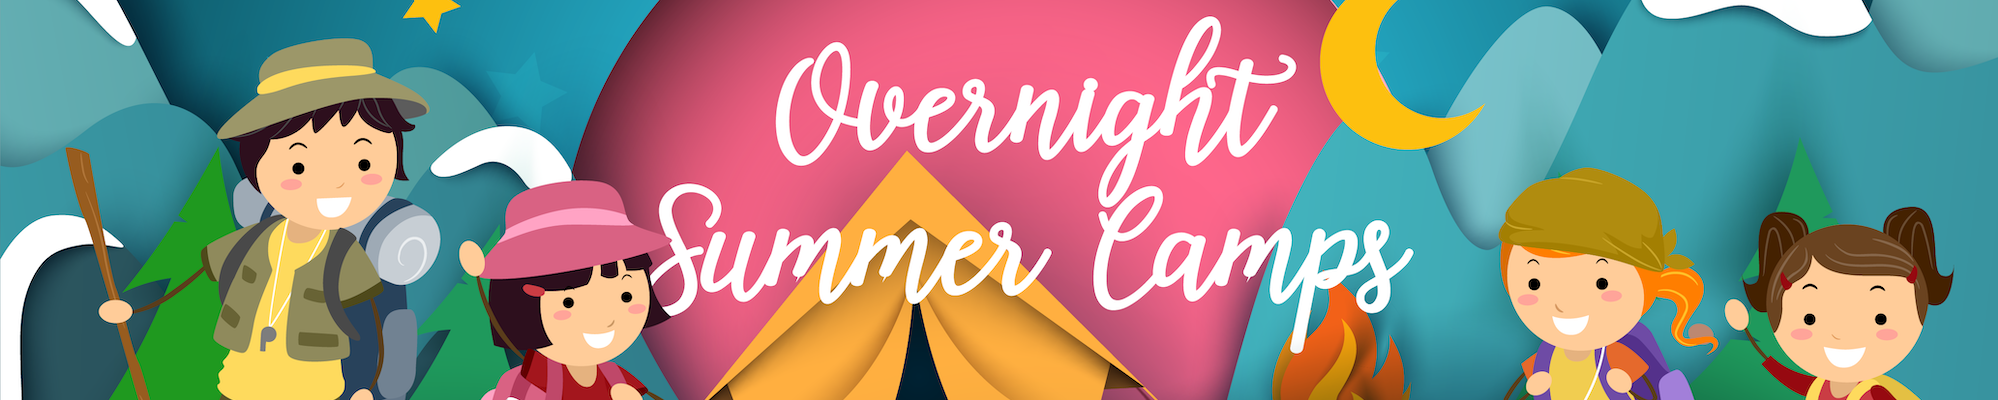 Overnight summer camps illustration